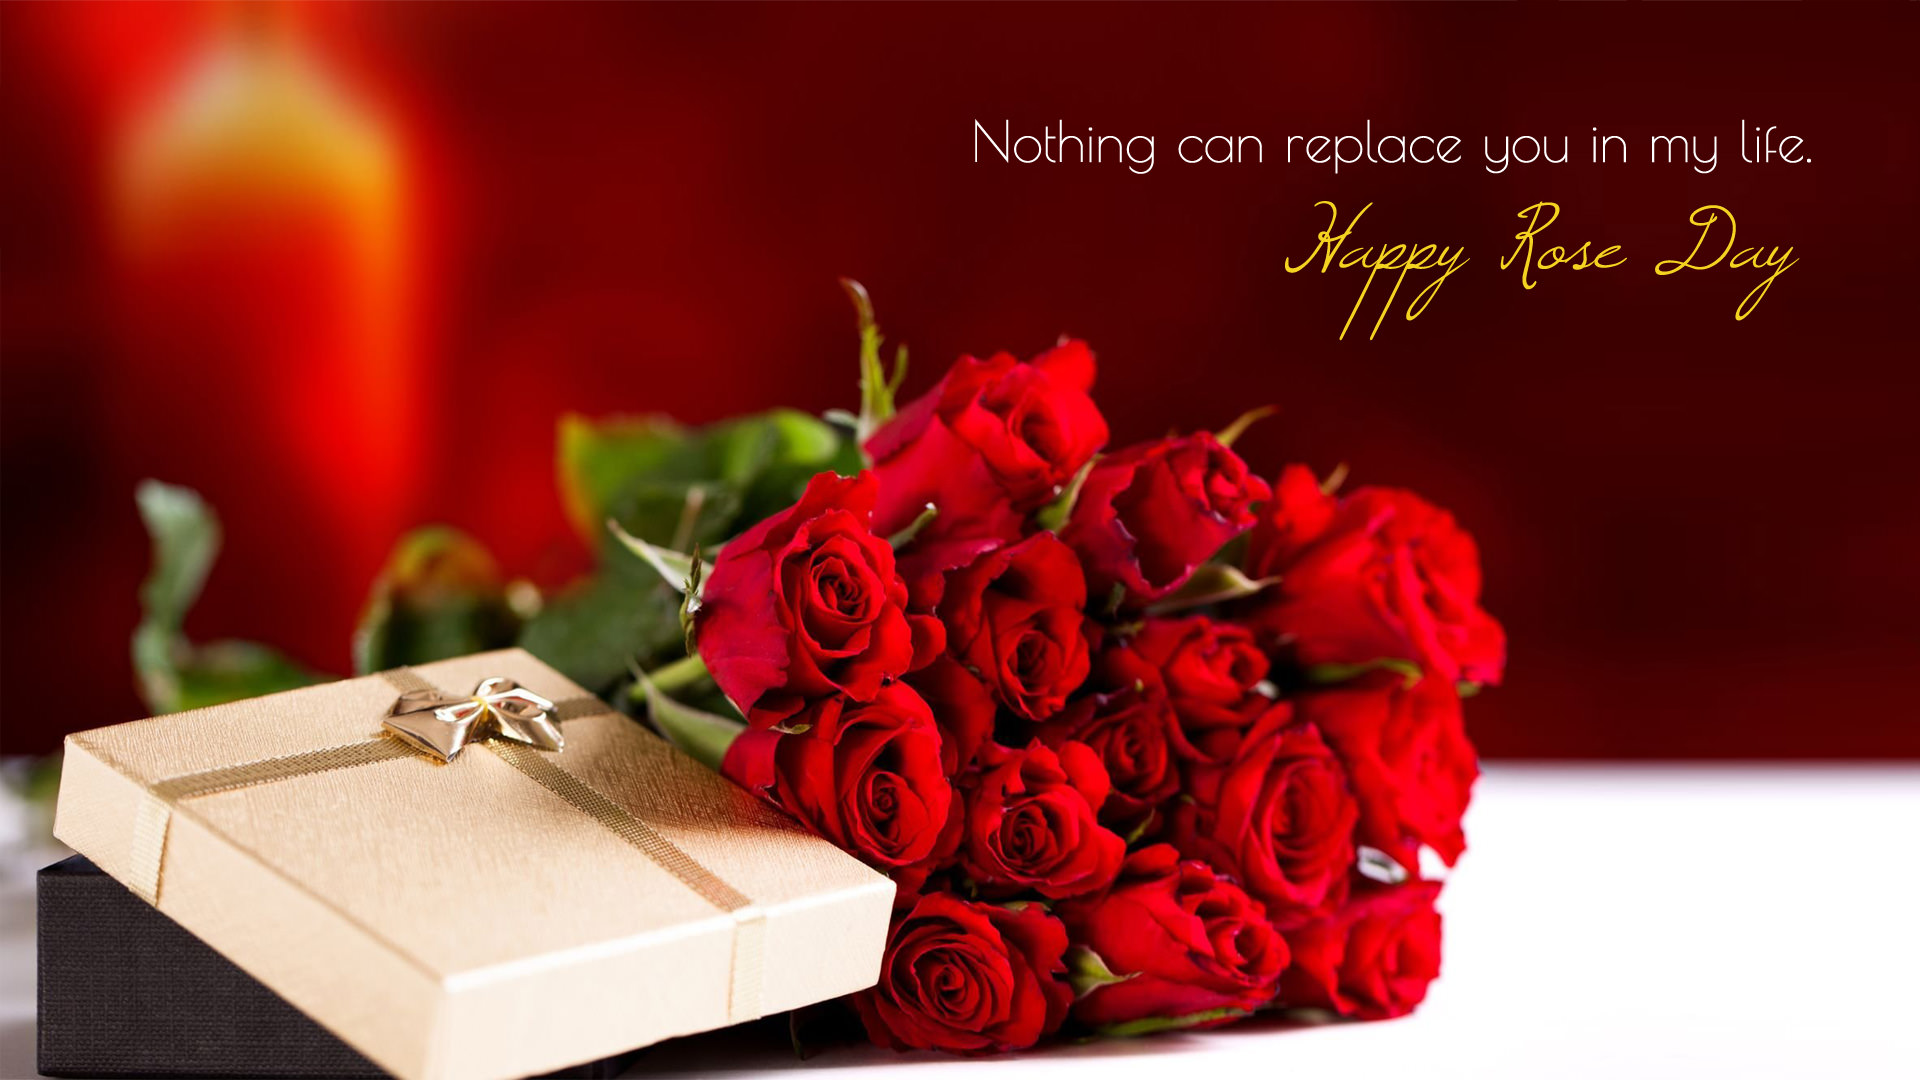 7th feb rose day wallpaper hd all color of roses for - Bunch of roses hd images ...